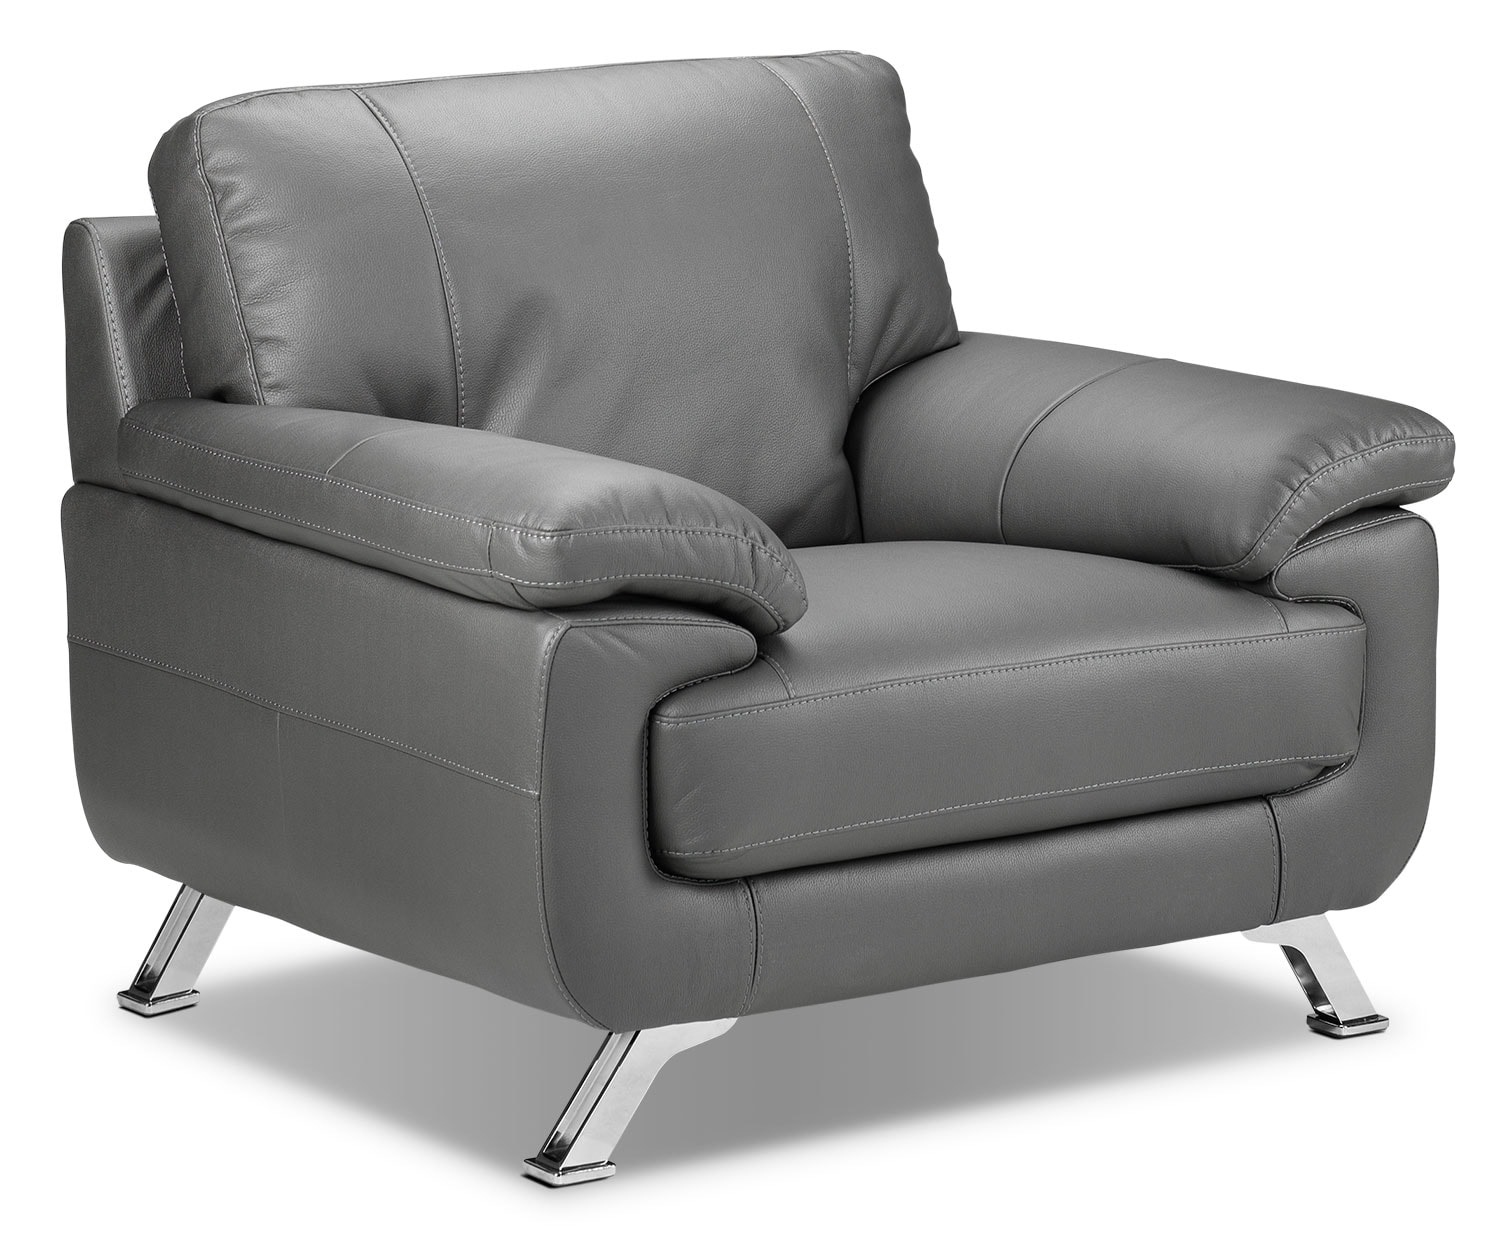 Living Room Furniture - Infinity Chair - Grey